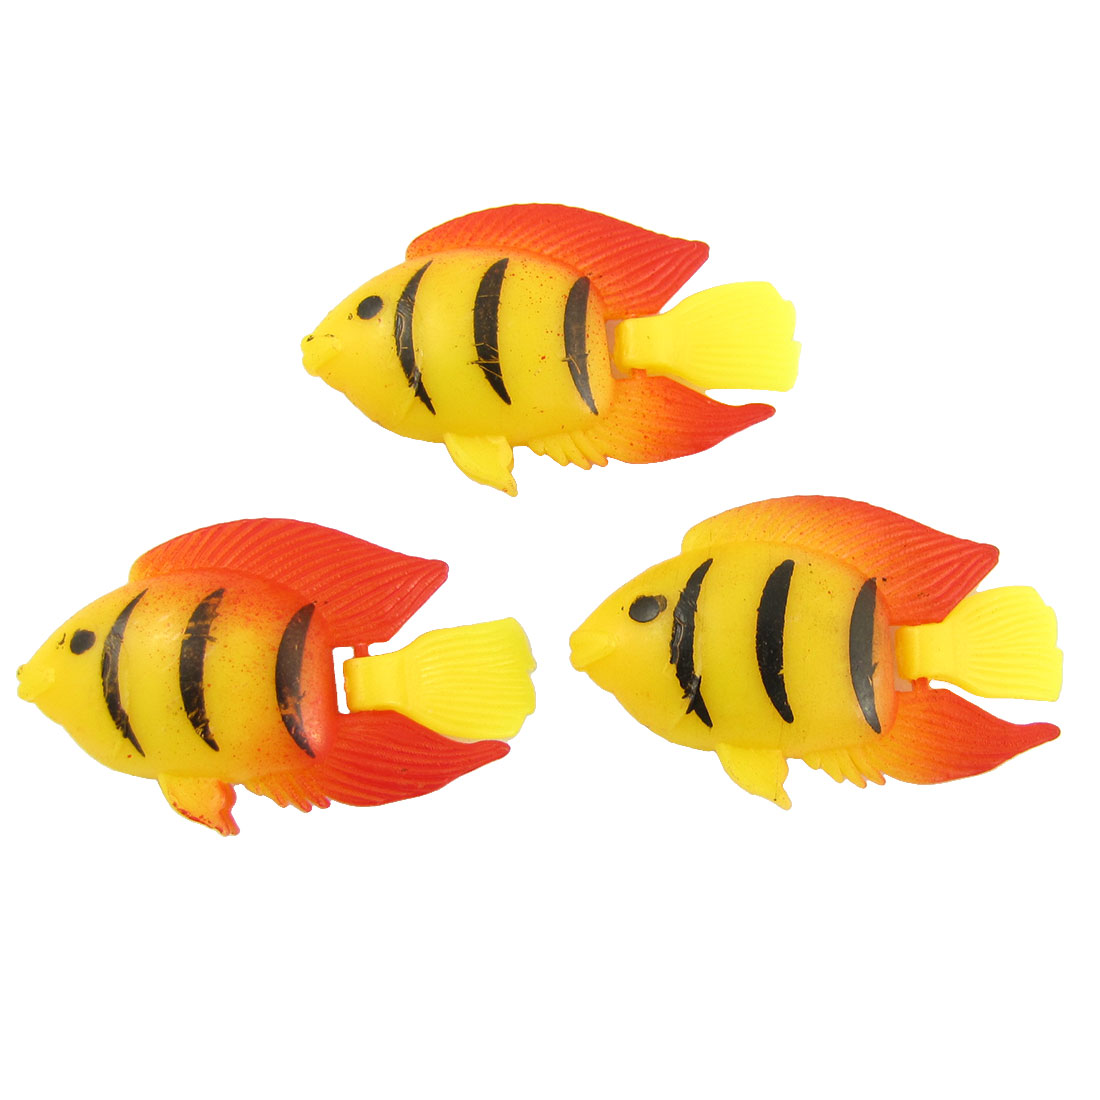 Black Striped Orange Fins Aquarium Plastic Fish 3 Pcs